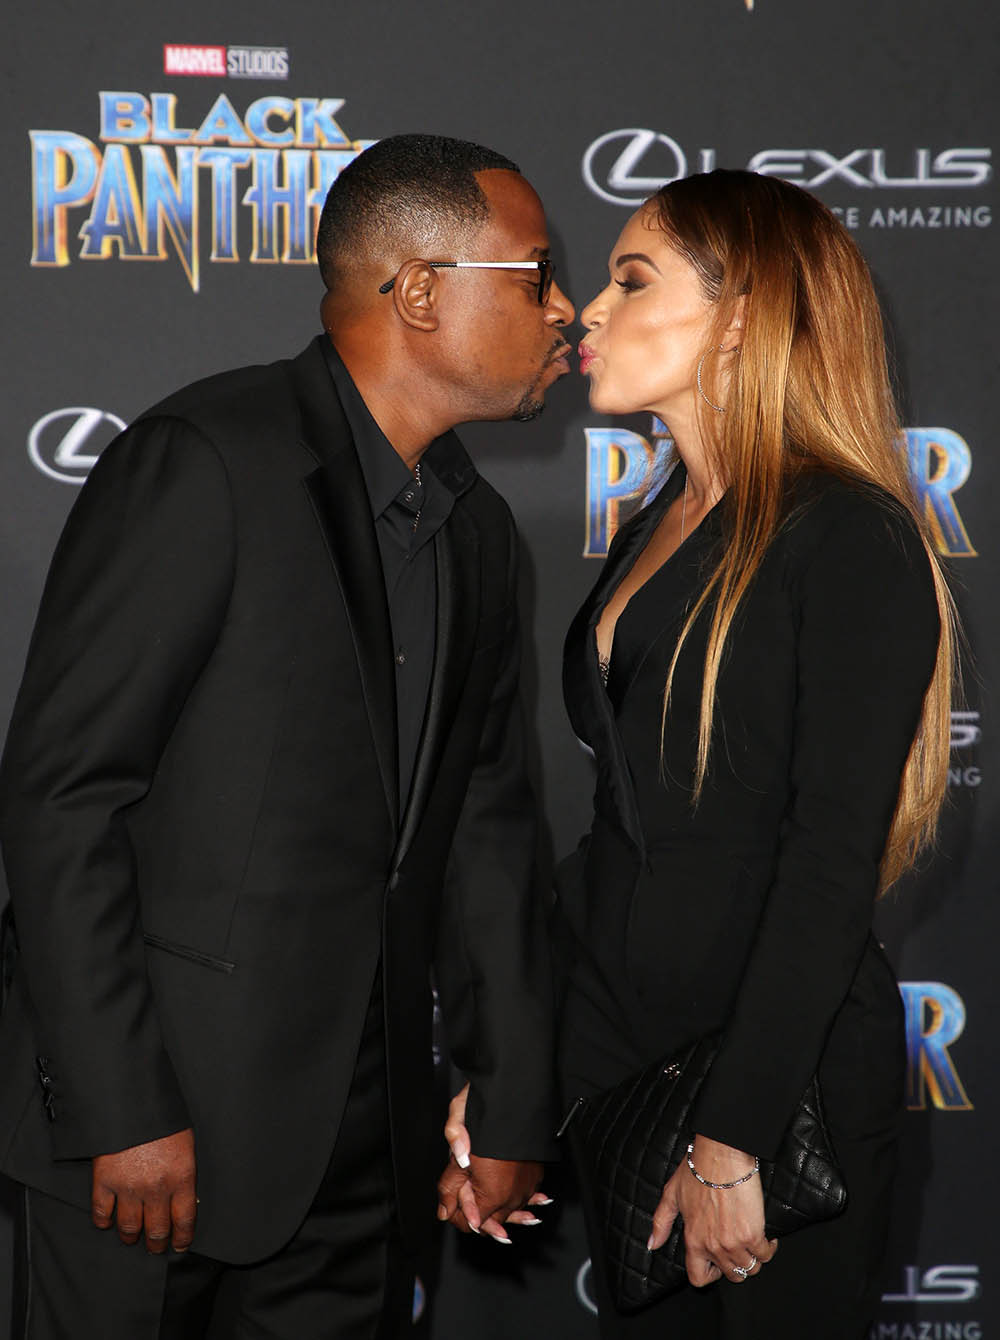 Martin Lawrence Amp Roberta Moradfar At Film Premiere Of